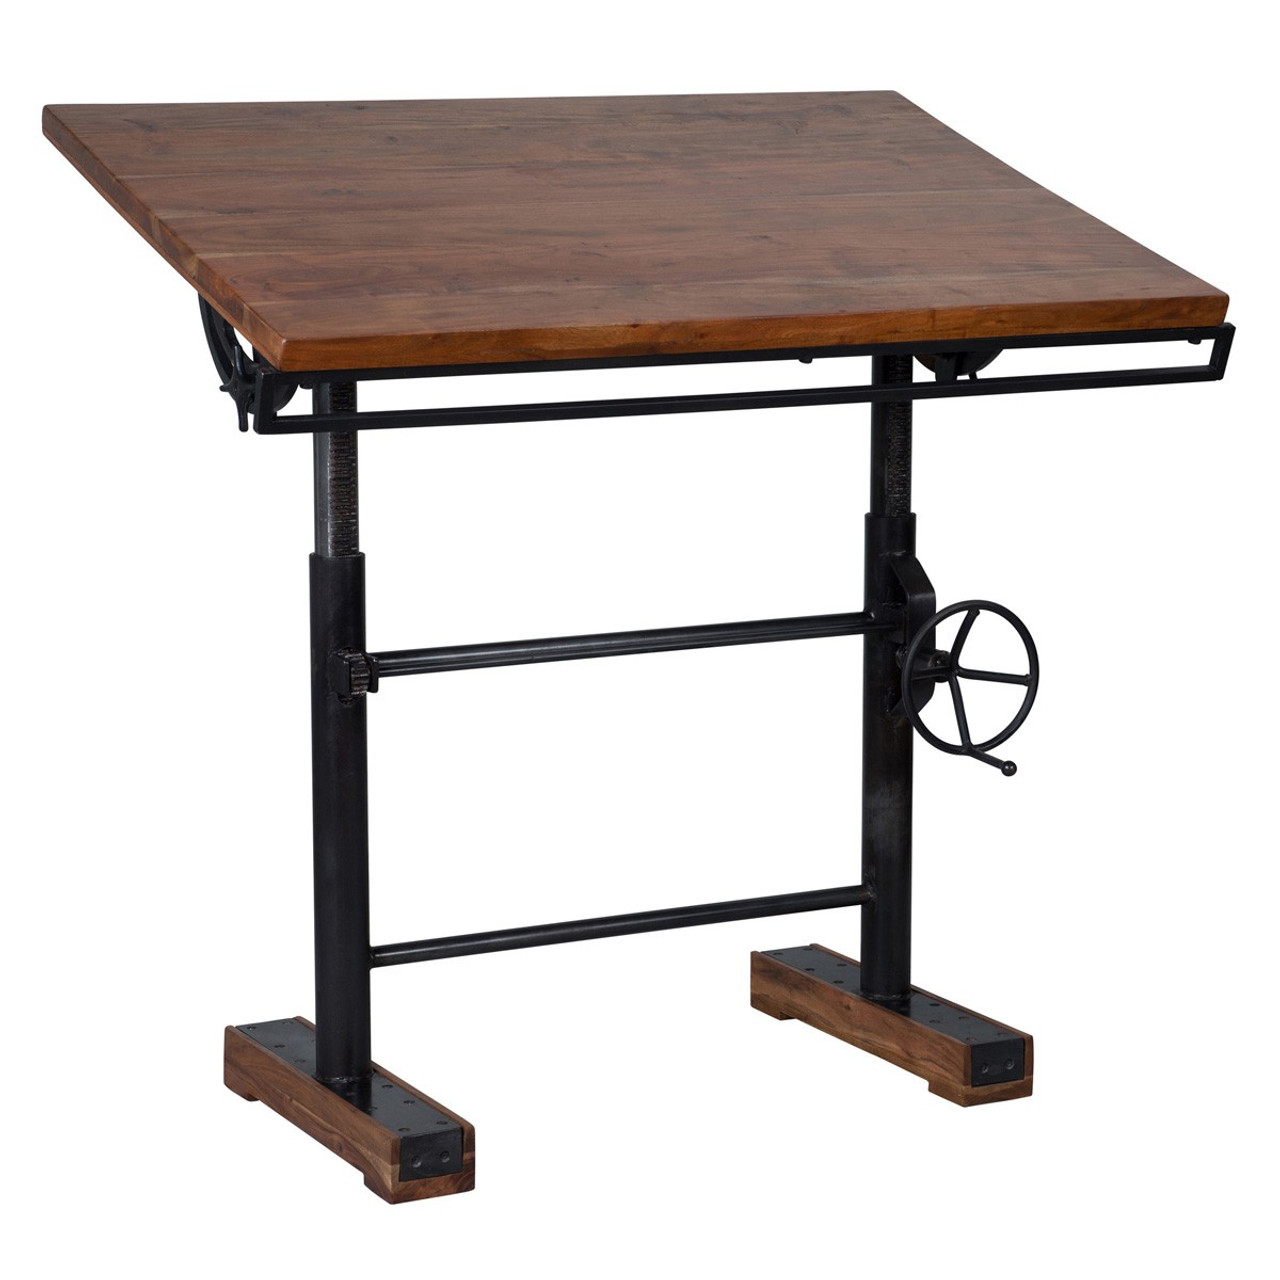 Steampunk Industrial Crank Adjustable Standing Desk